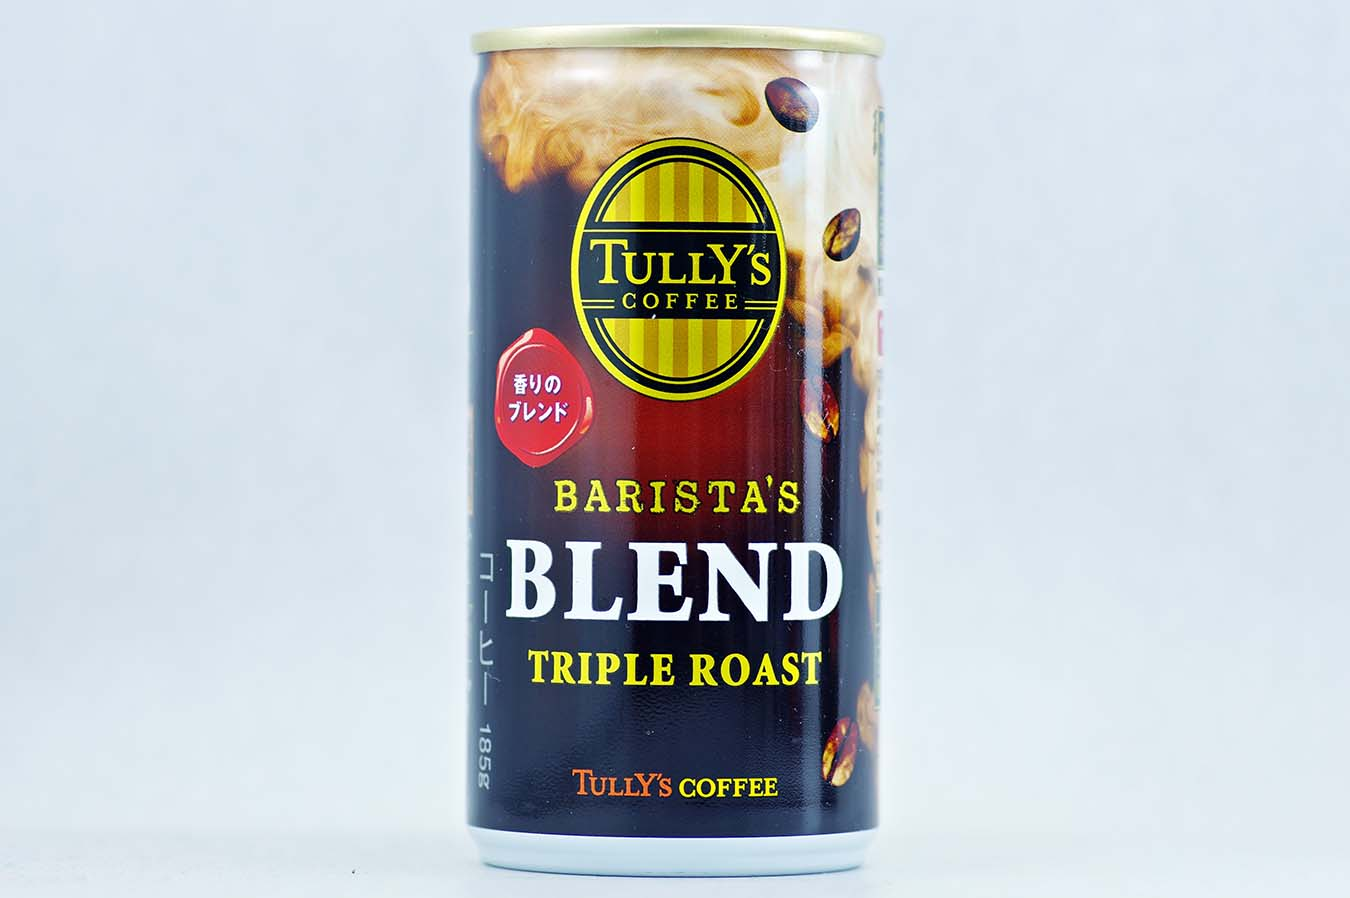 TULLY'S COFFEE BARISTA'S BLEND 2015年10月